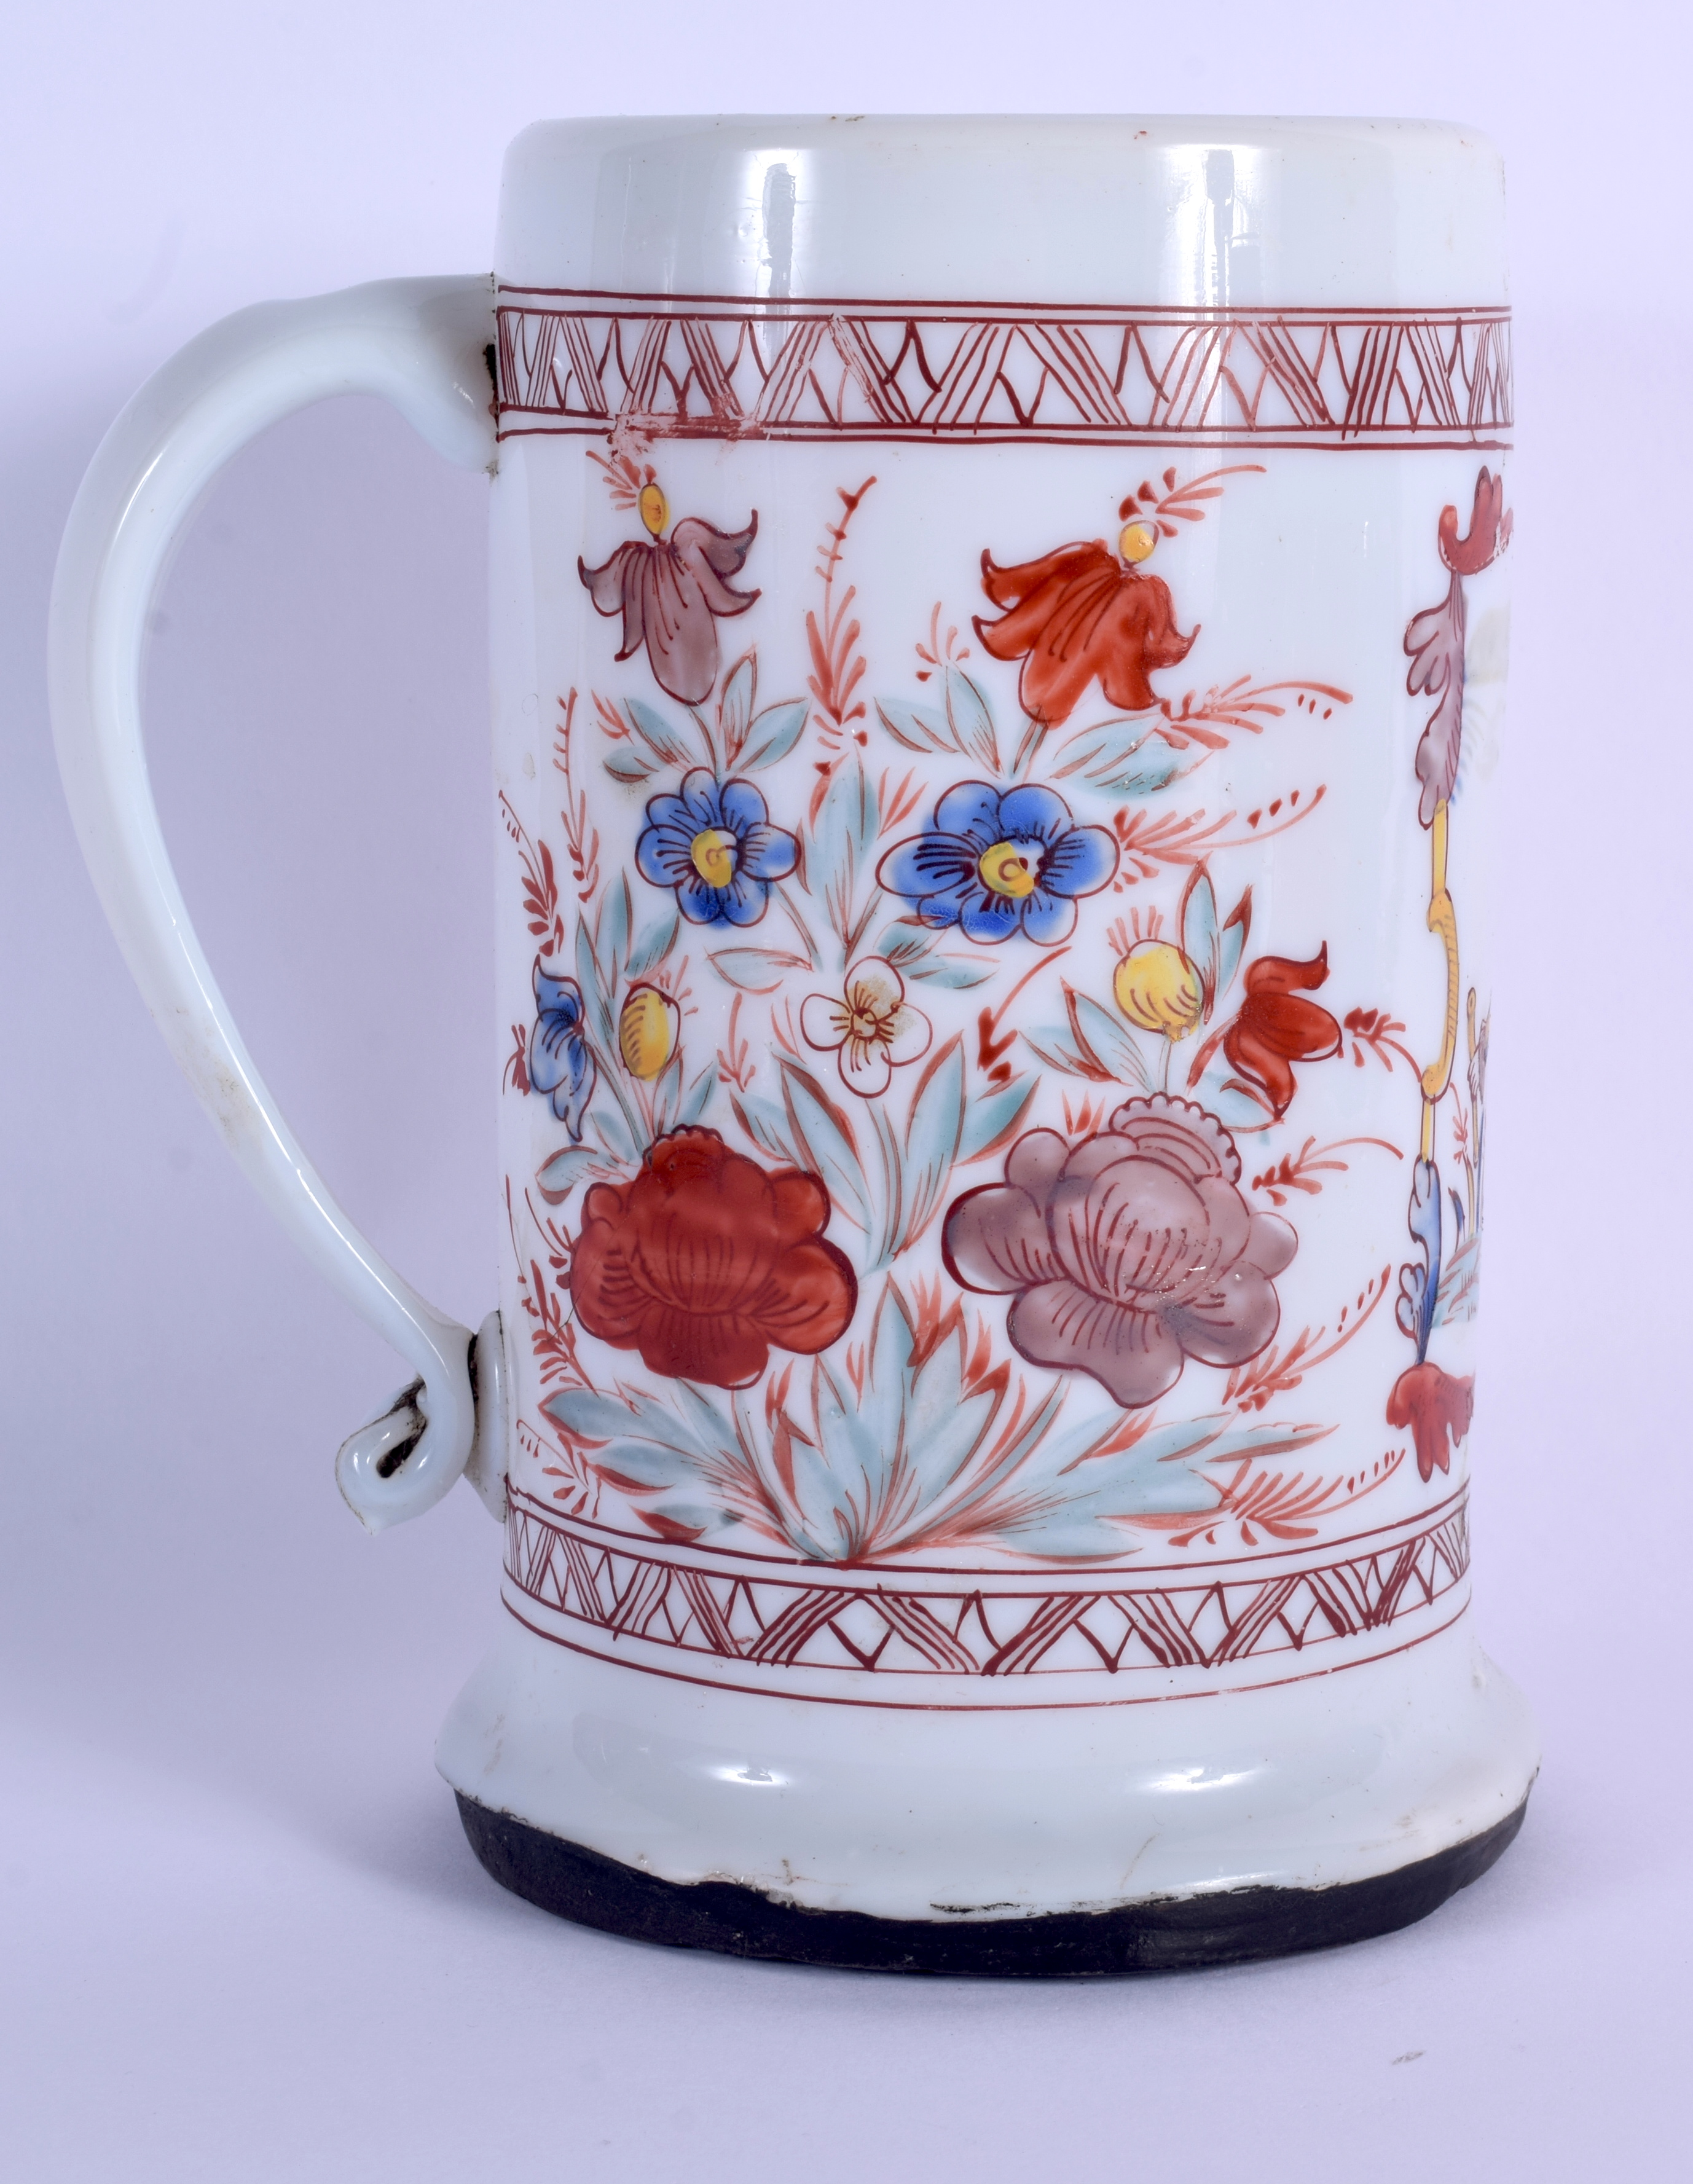 AN 18TH CENTURY ENGLISH ENAMELLED MILK GLASS TANKARD possibly made for the Dutch market. 18.5 cm hig